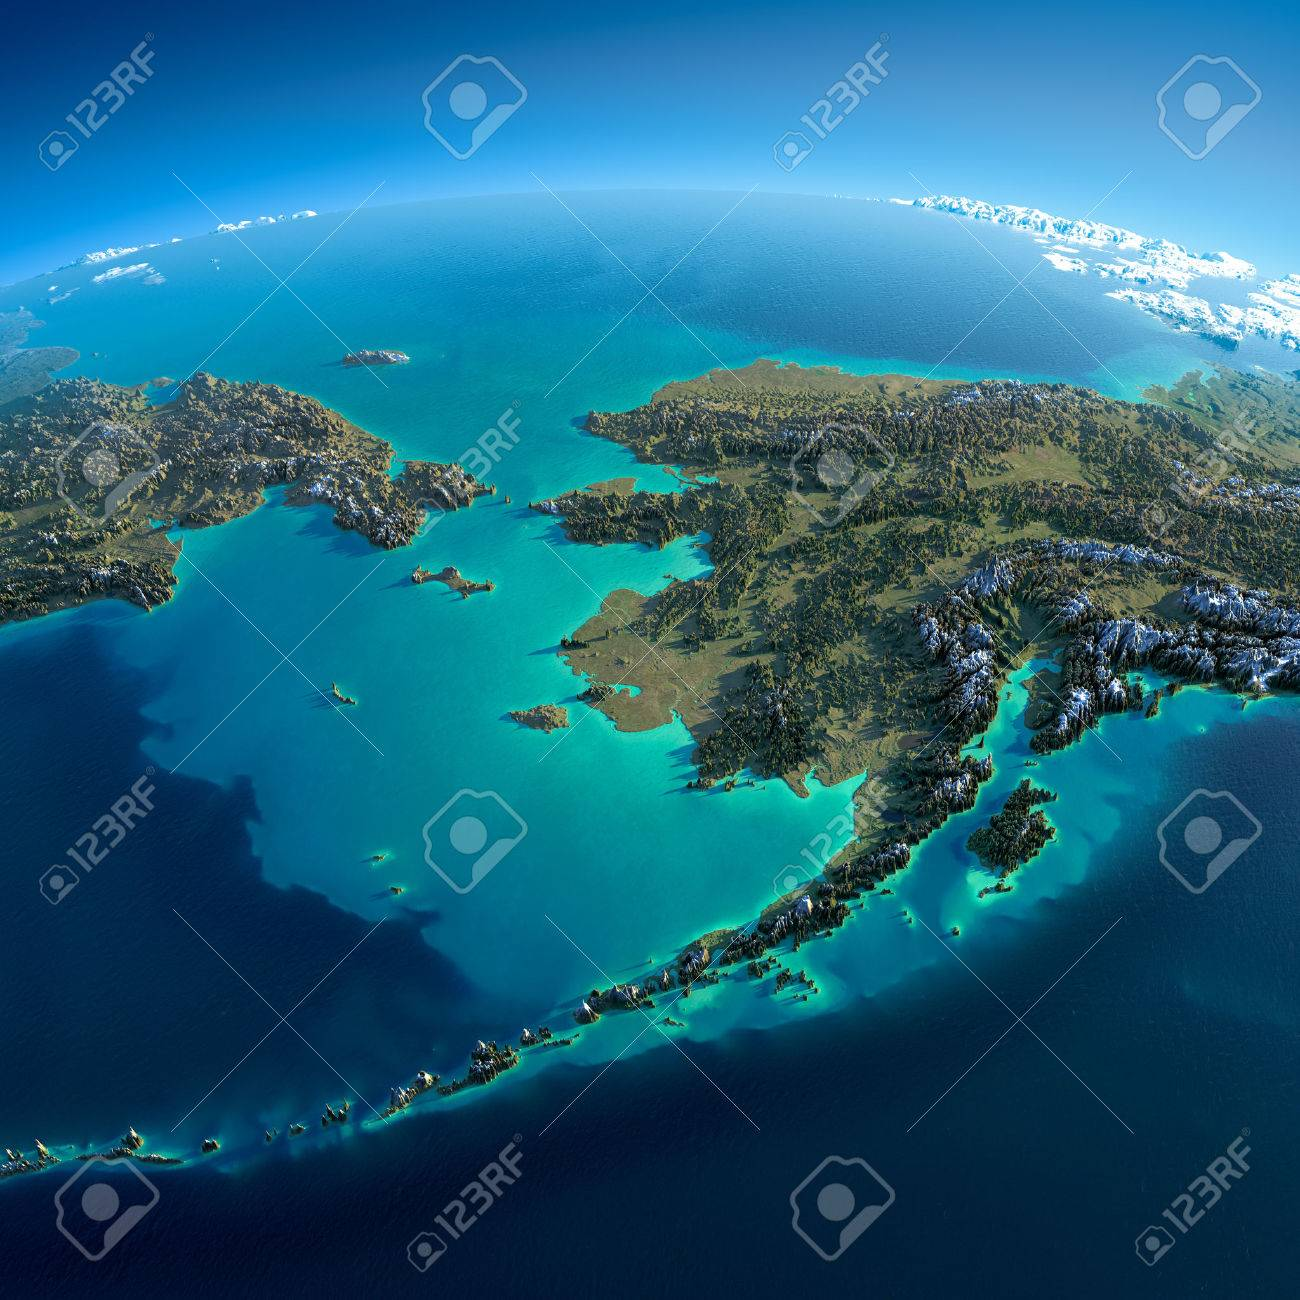 Highly detailed planet Earth in the morning Exaggerated precise relief lit morning sun Detailed Earth Chukotka, Alaska and the Bering Strait - 26509320